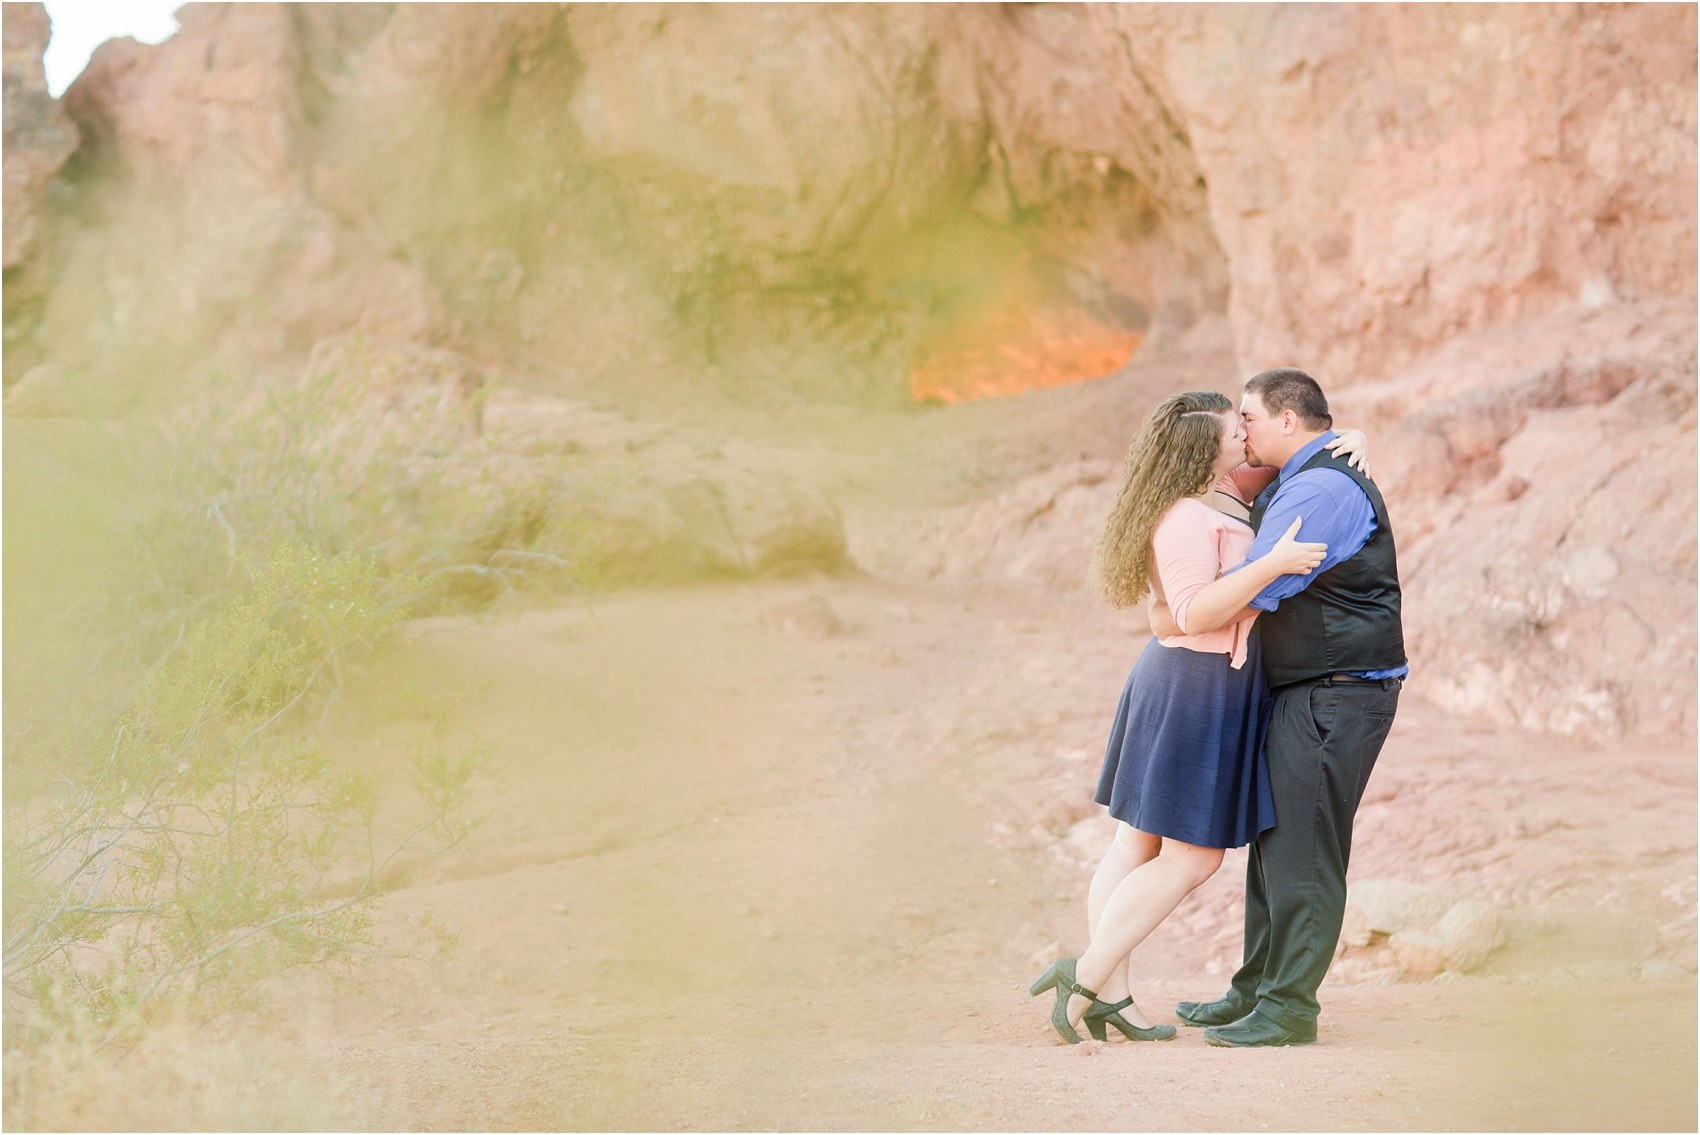 romantic-desert-engagement-photos-in-scottsdale-arizona-courtney-carolyn-photography-by-katelyn-james_0021.jpg